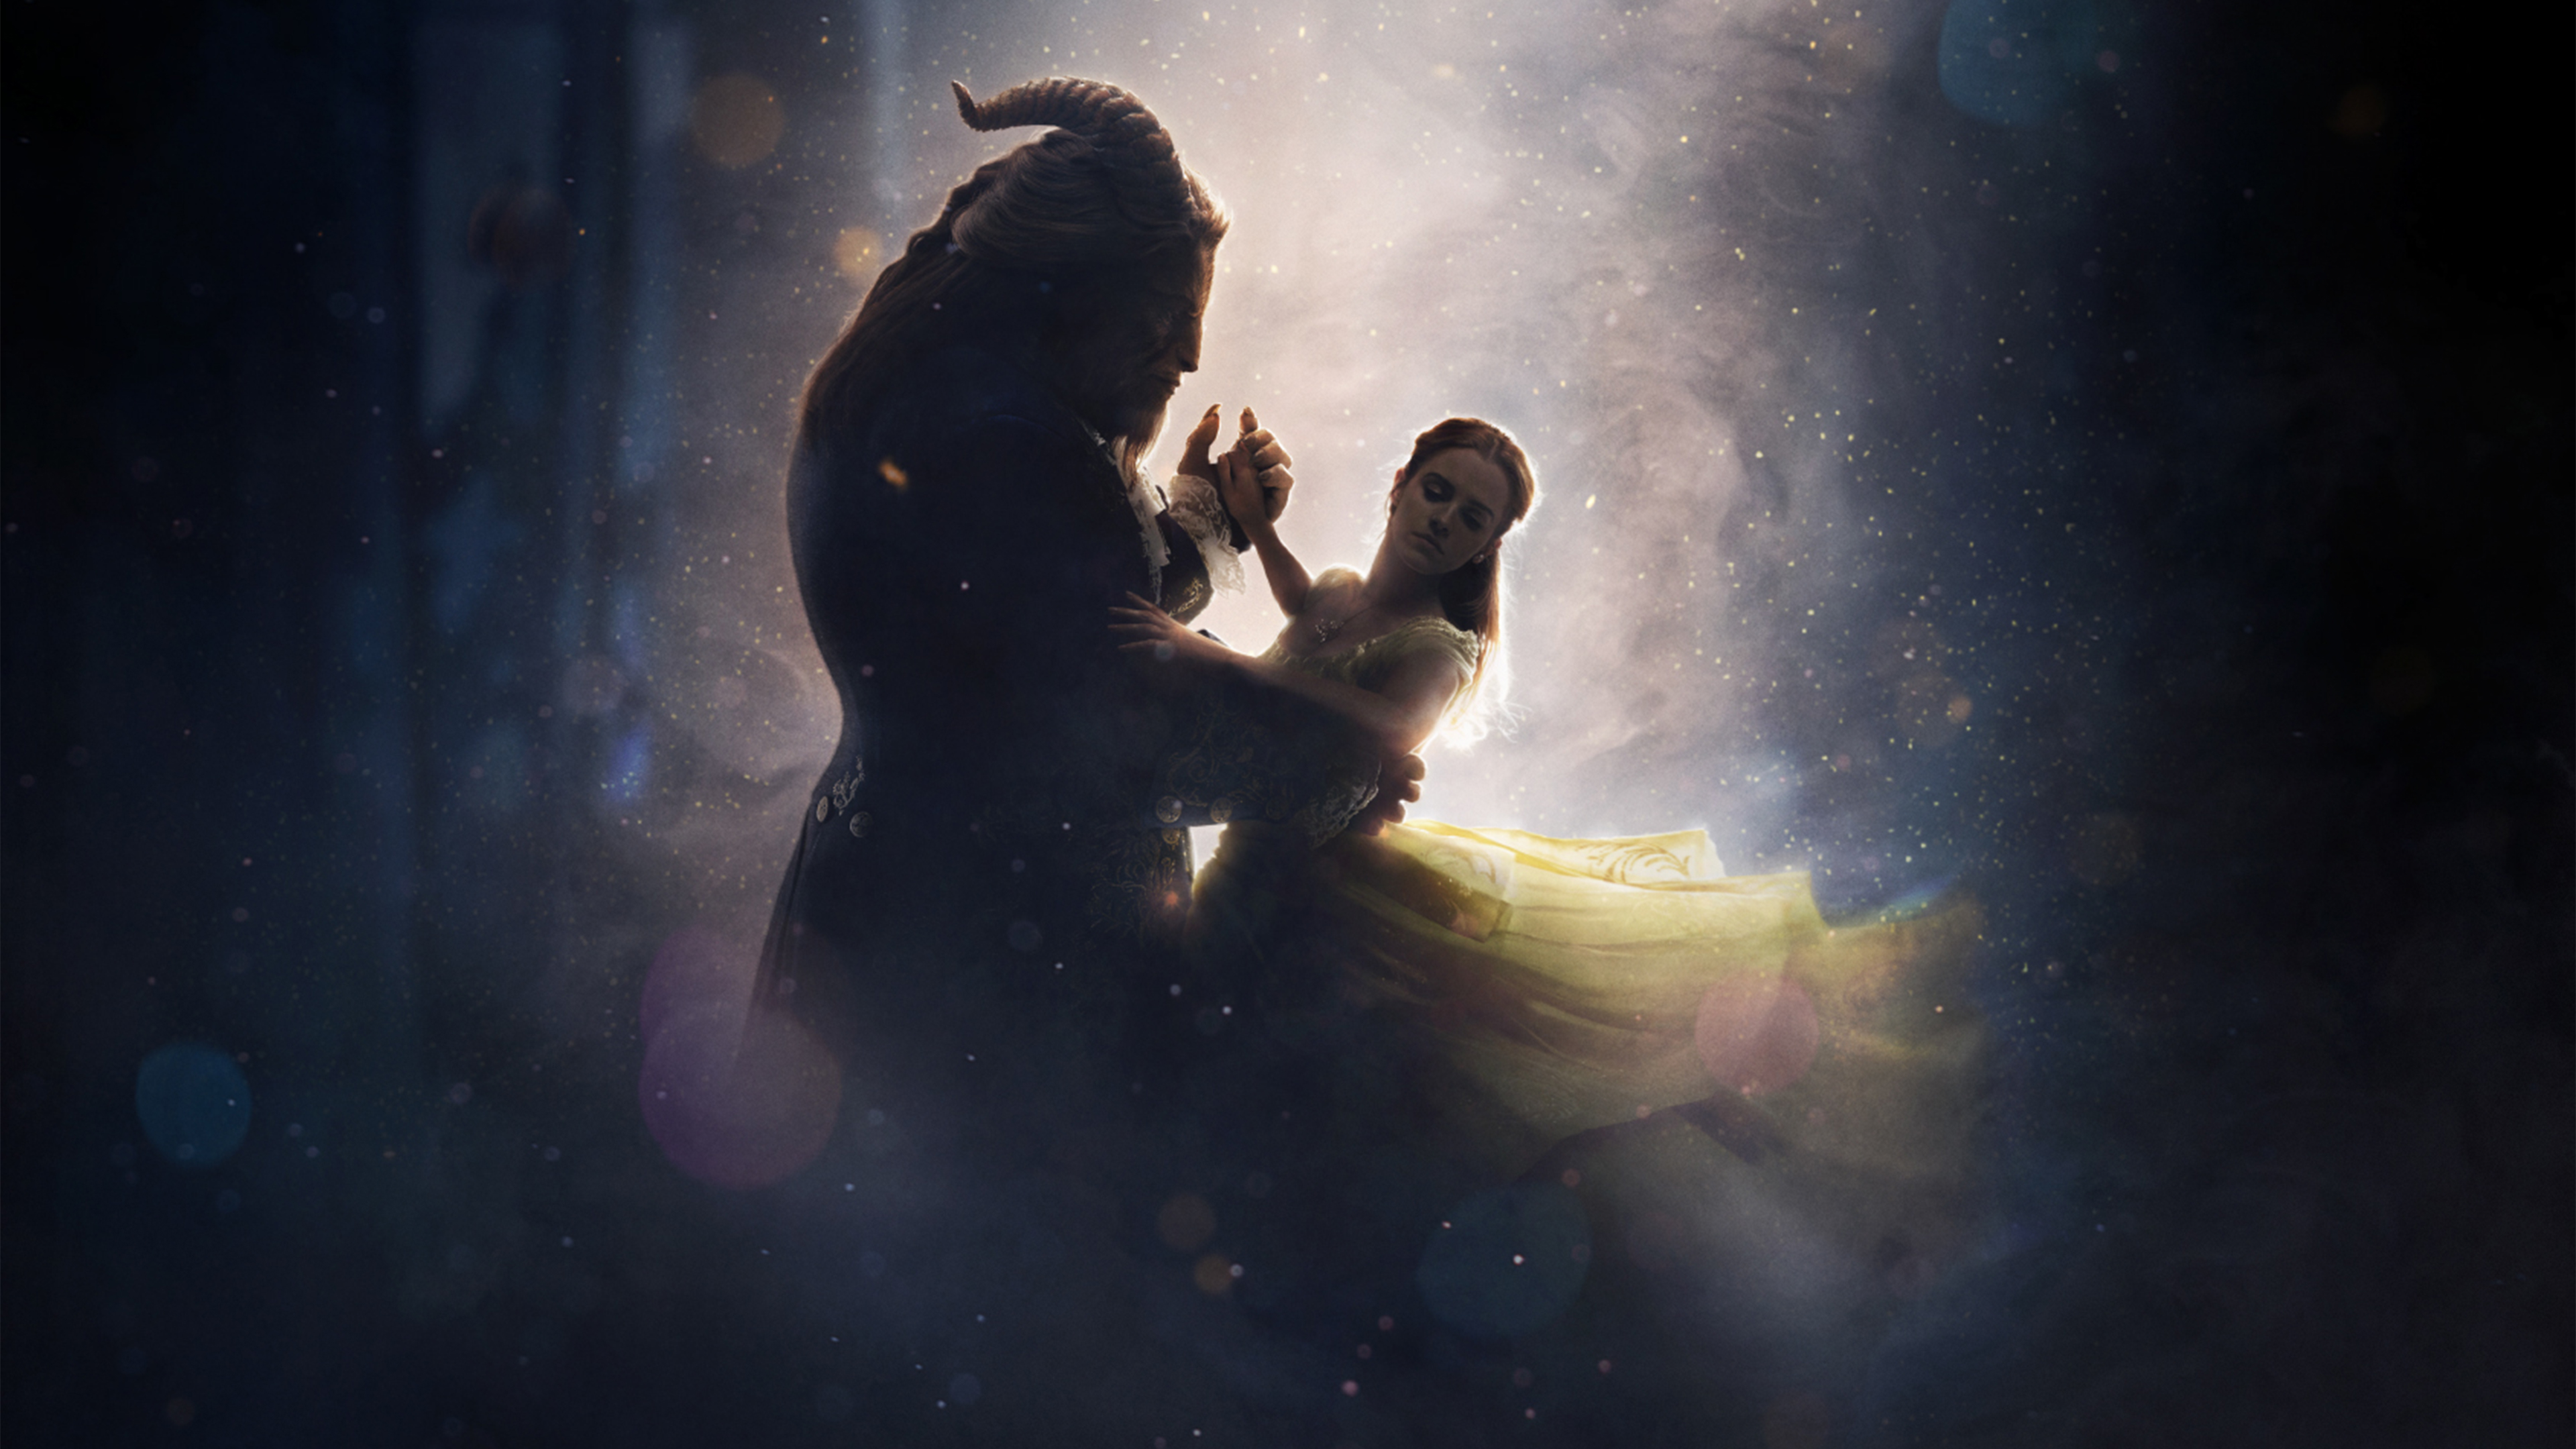 Beauty And The Beast Wallpapers   X29EOGS   4USkY 3840x2160